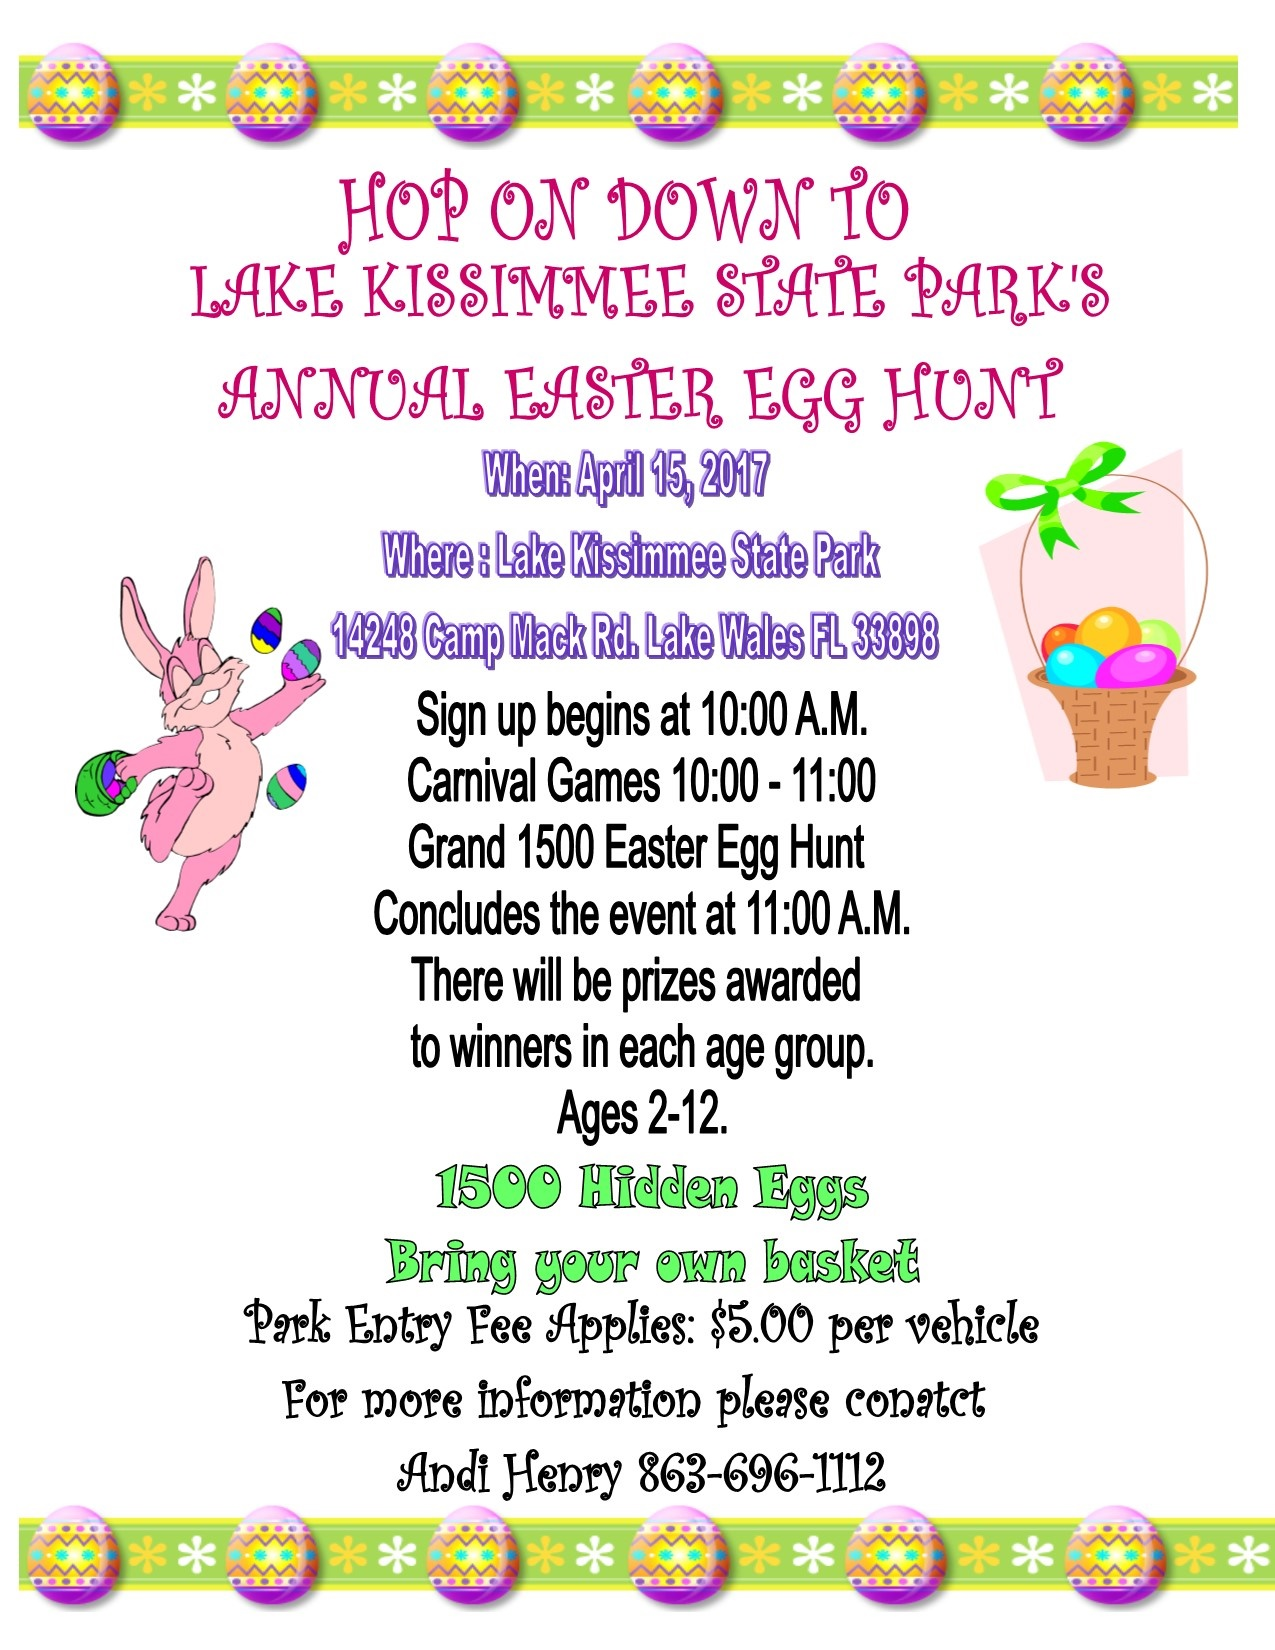 Hop On Down To Lake Kissimmee State Park's Annual Easter Egg Hunt.